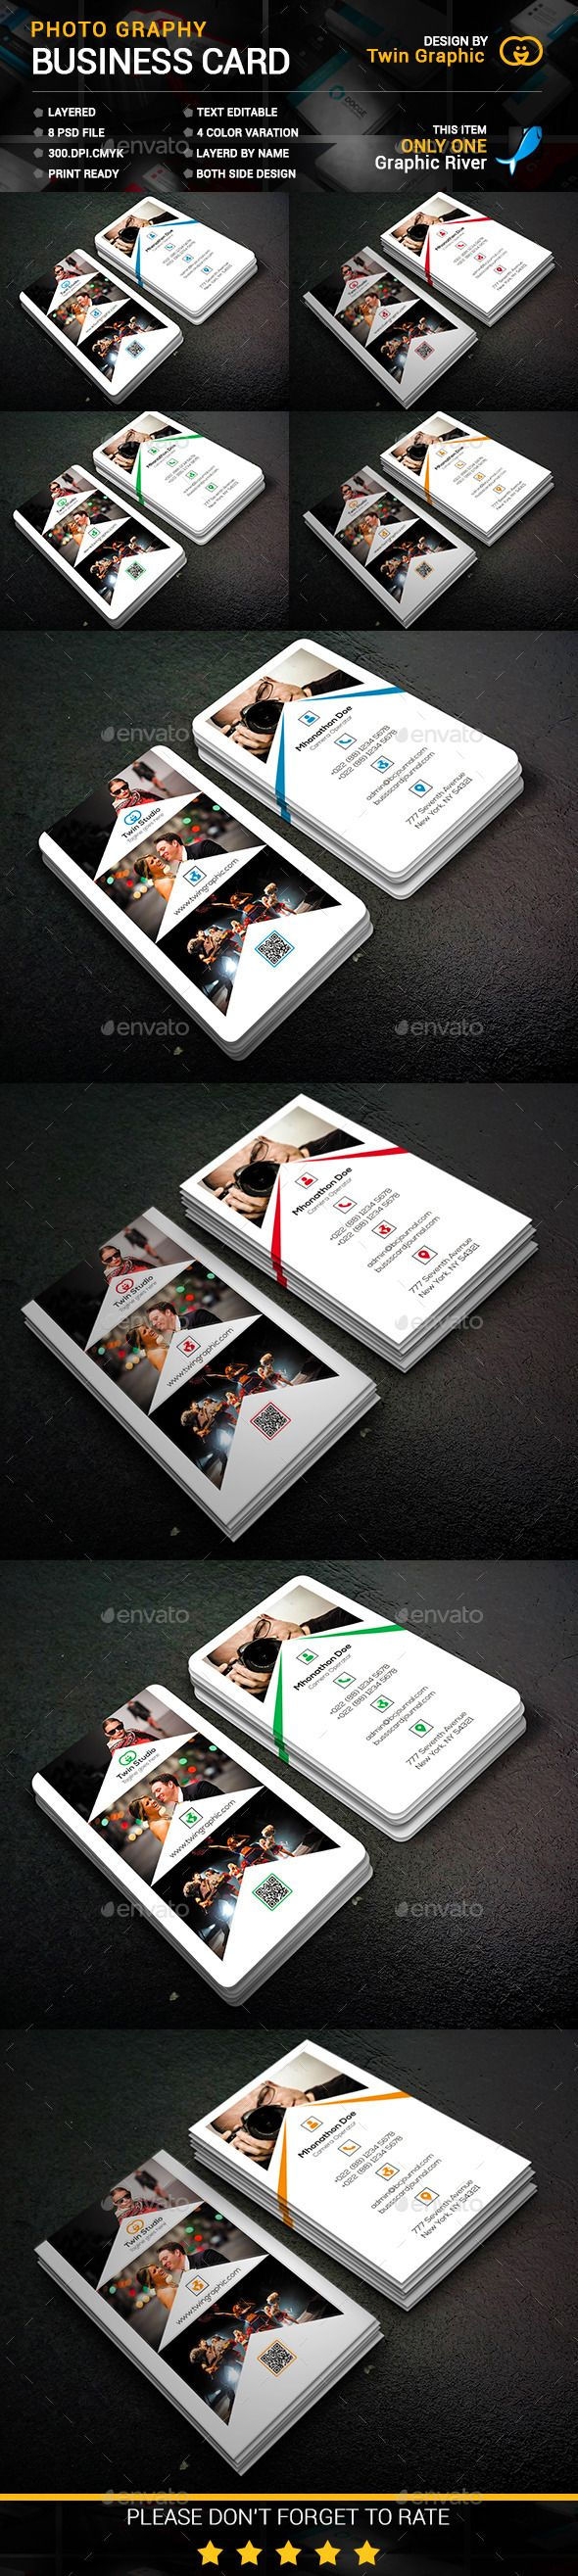 116 best business card images on pinterest visit cards print photography business card design fbccfo Gallery